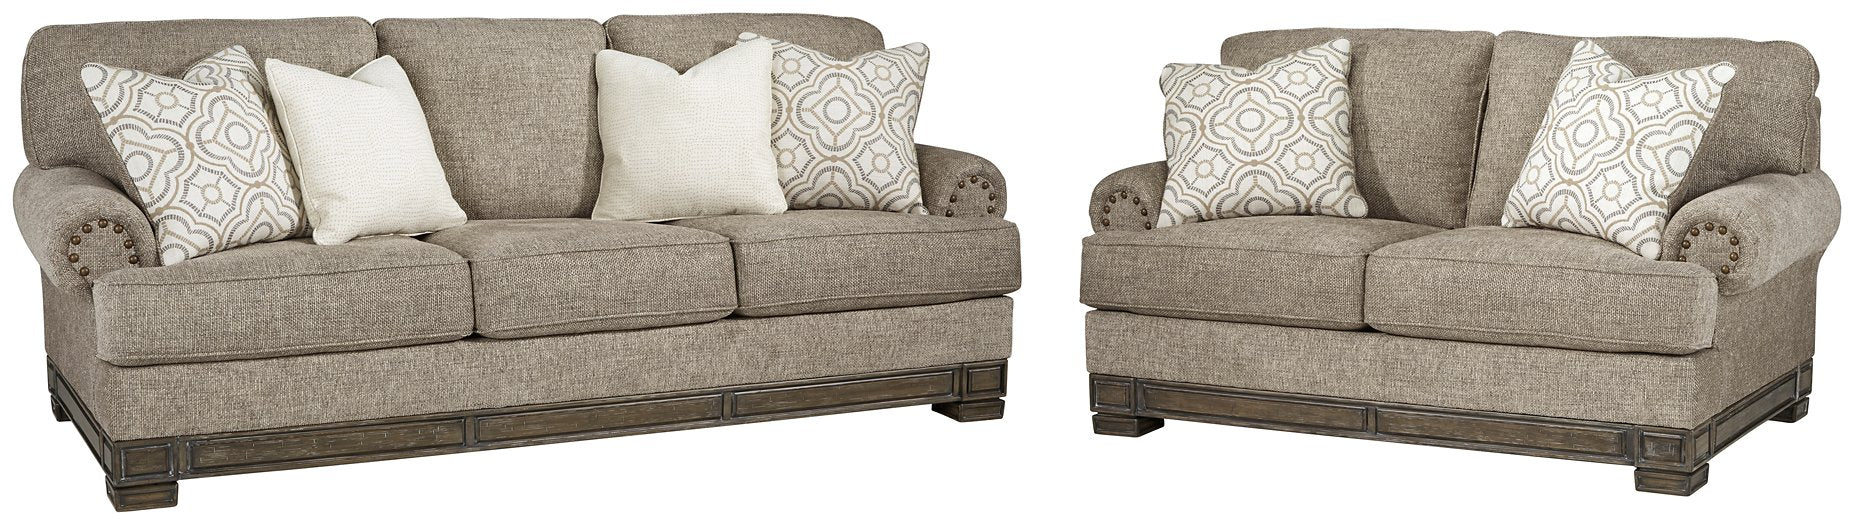 Einsgrove Signature Design 2-Piece Living Room Set image